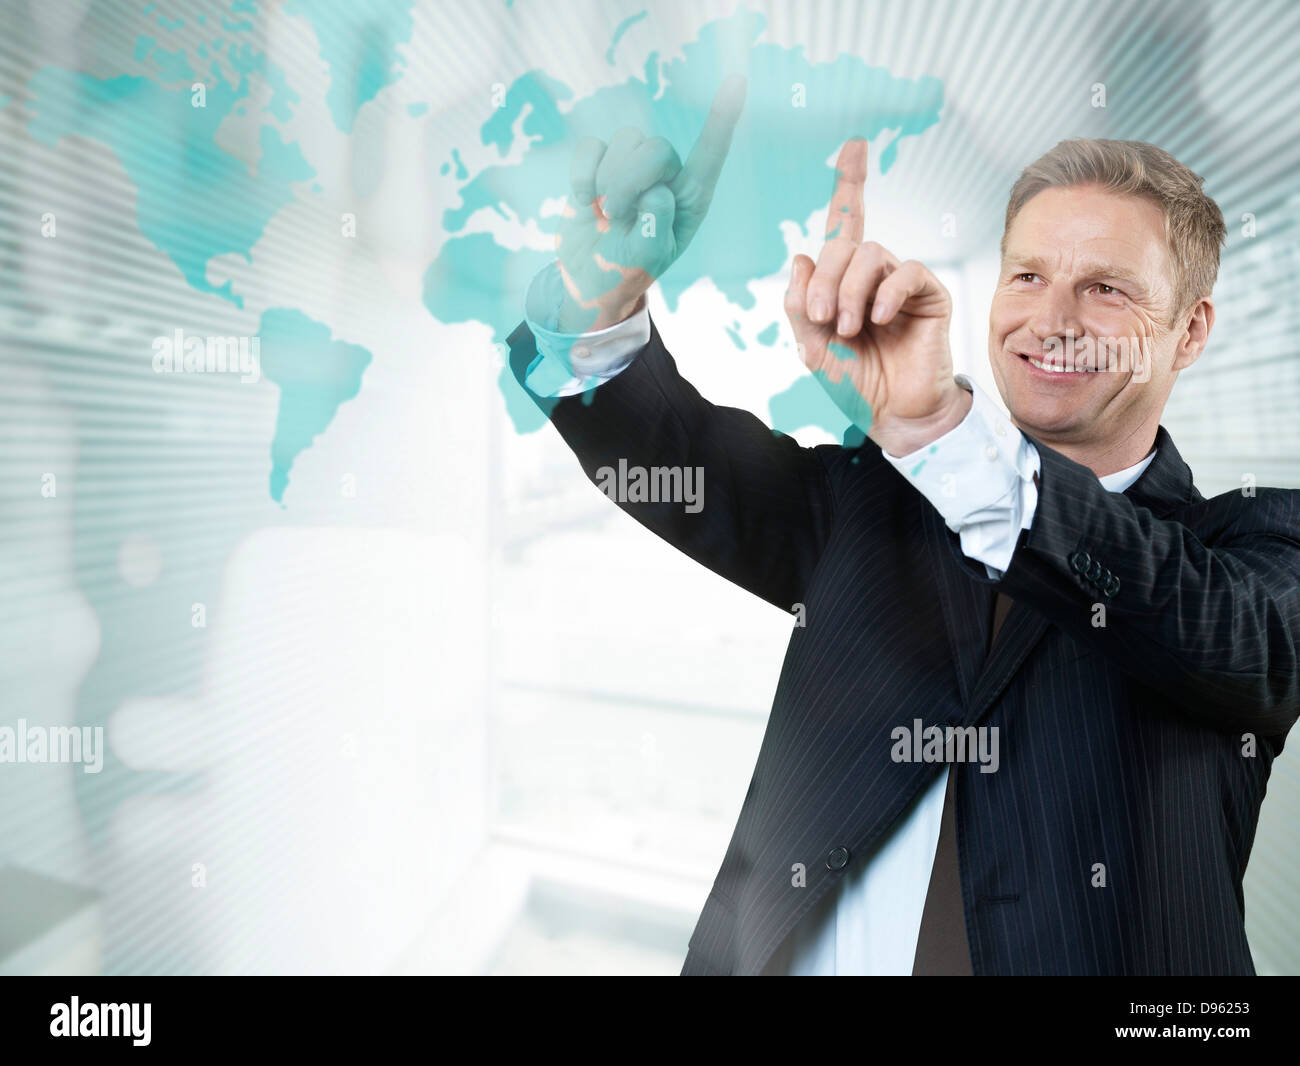 Businessman giving presentation in office, smiling - Stock Image